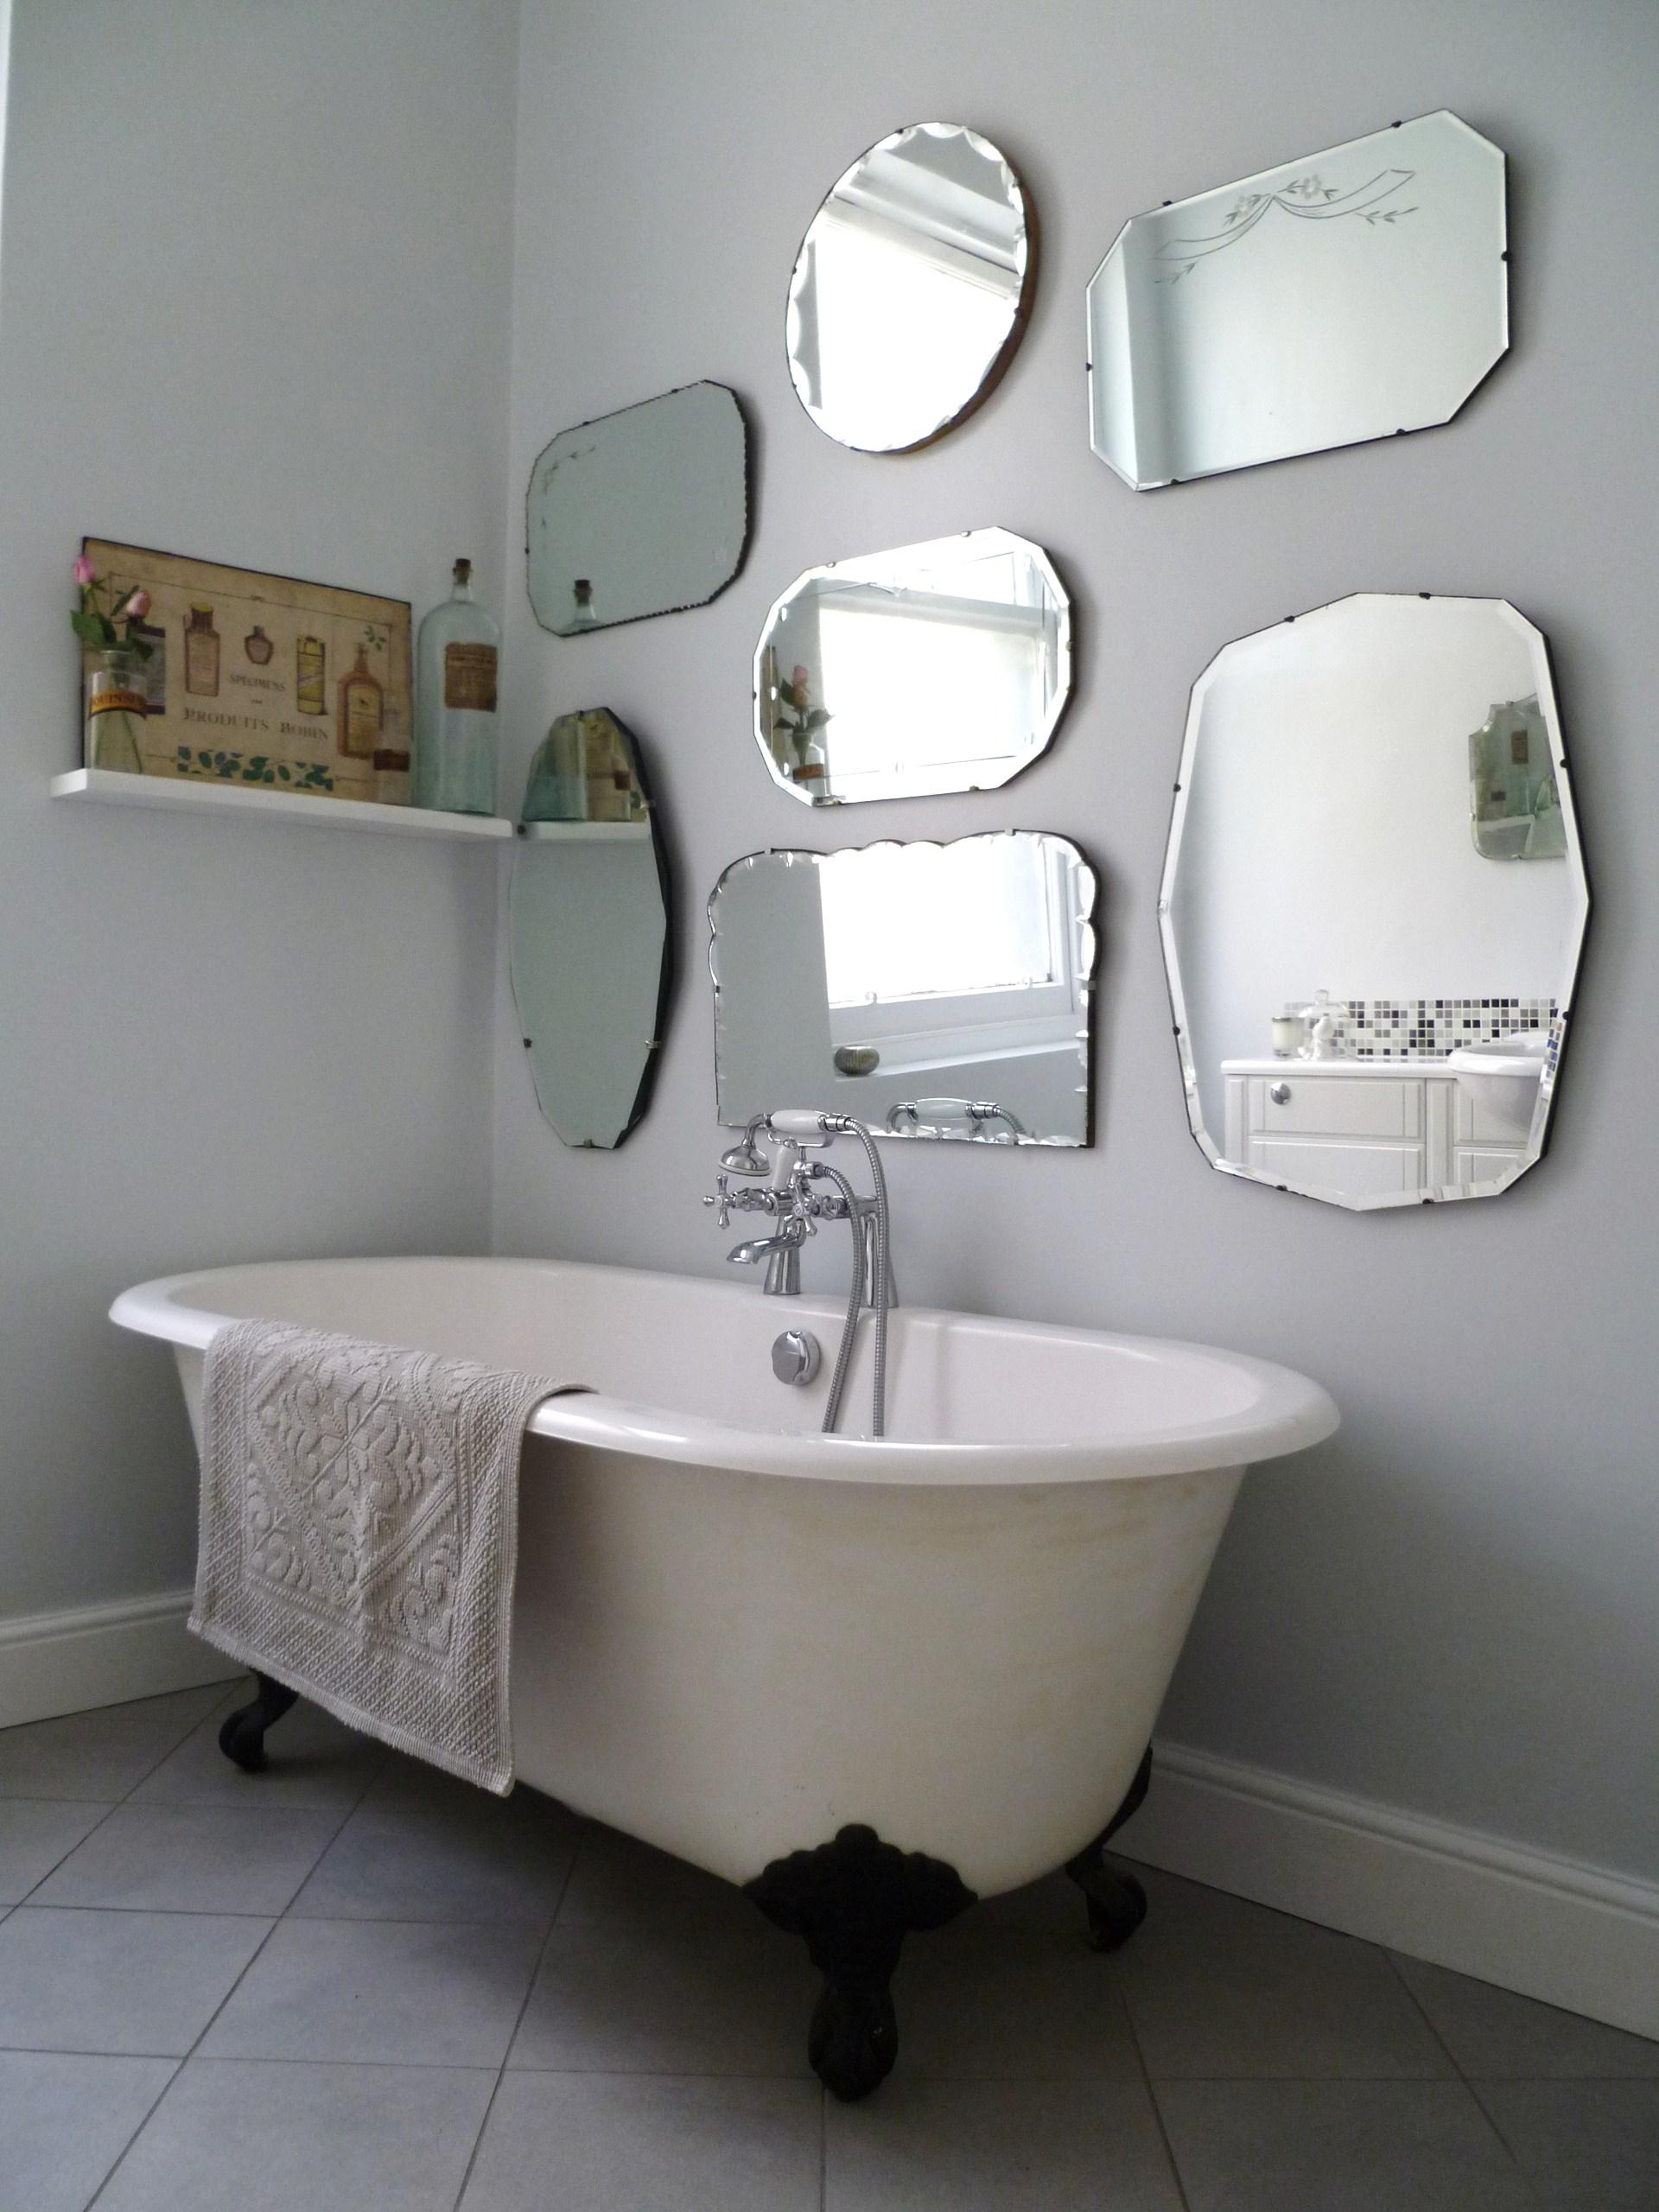 How To Hang A Display Of Vintage Mirrors Vintage Mirrors Pertaining To Vintage Style Bathroom Mirror (View 5 of 15)